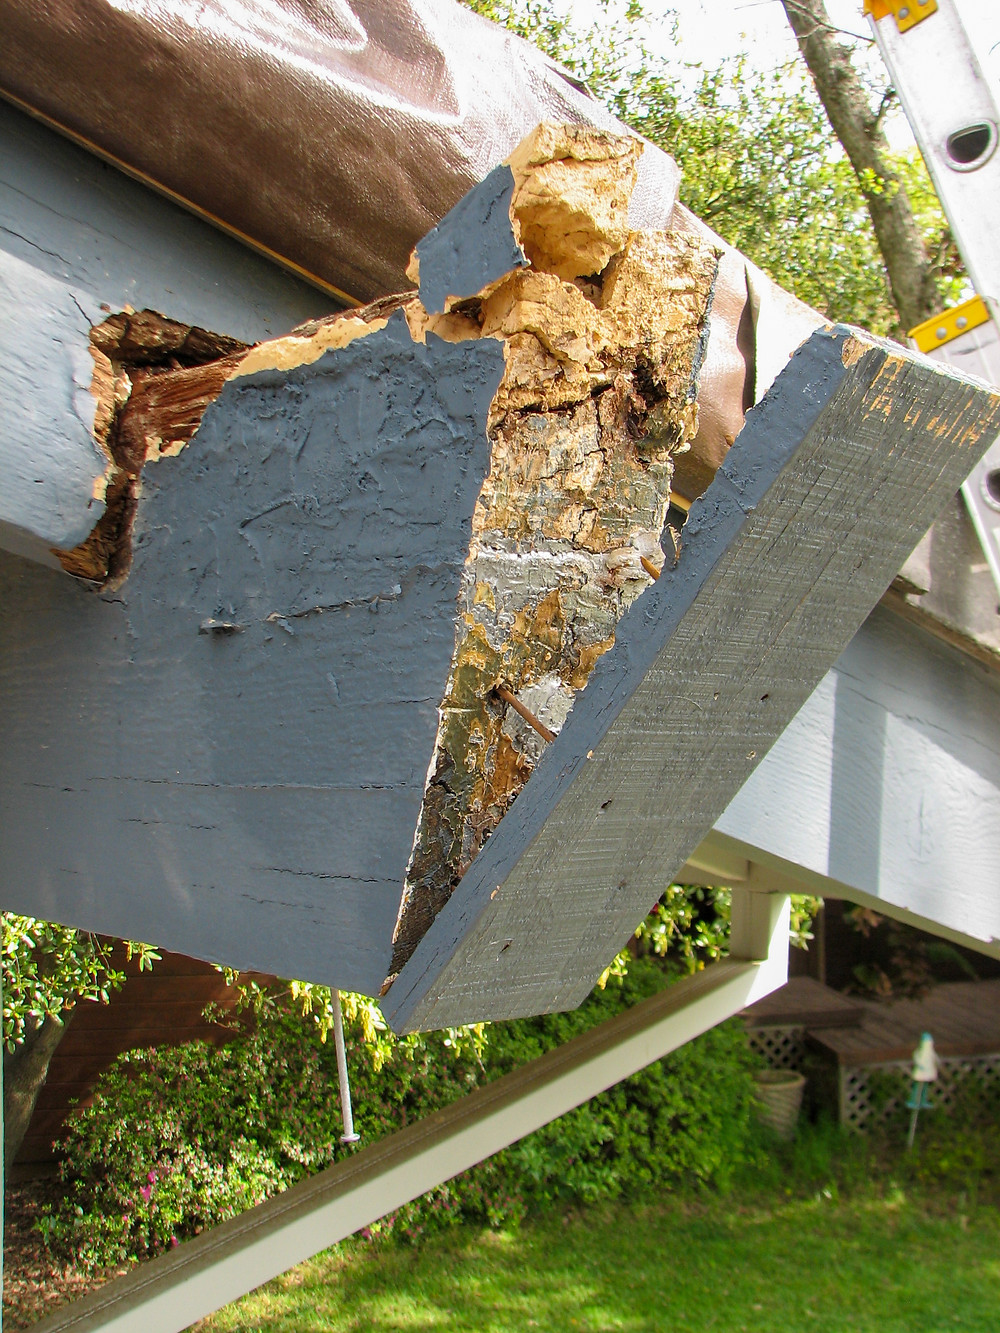 Epoxy dry rot repair in wood beam with dry rot